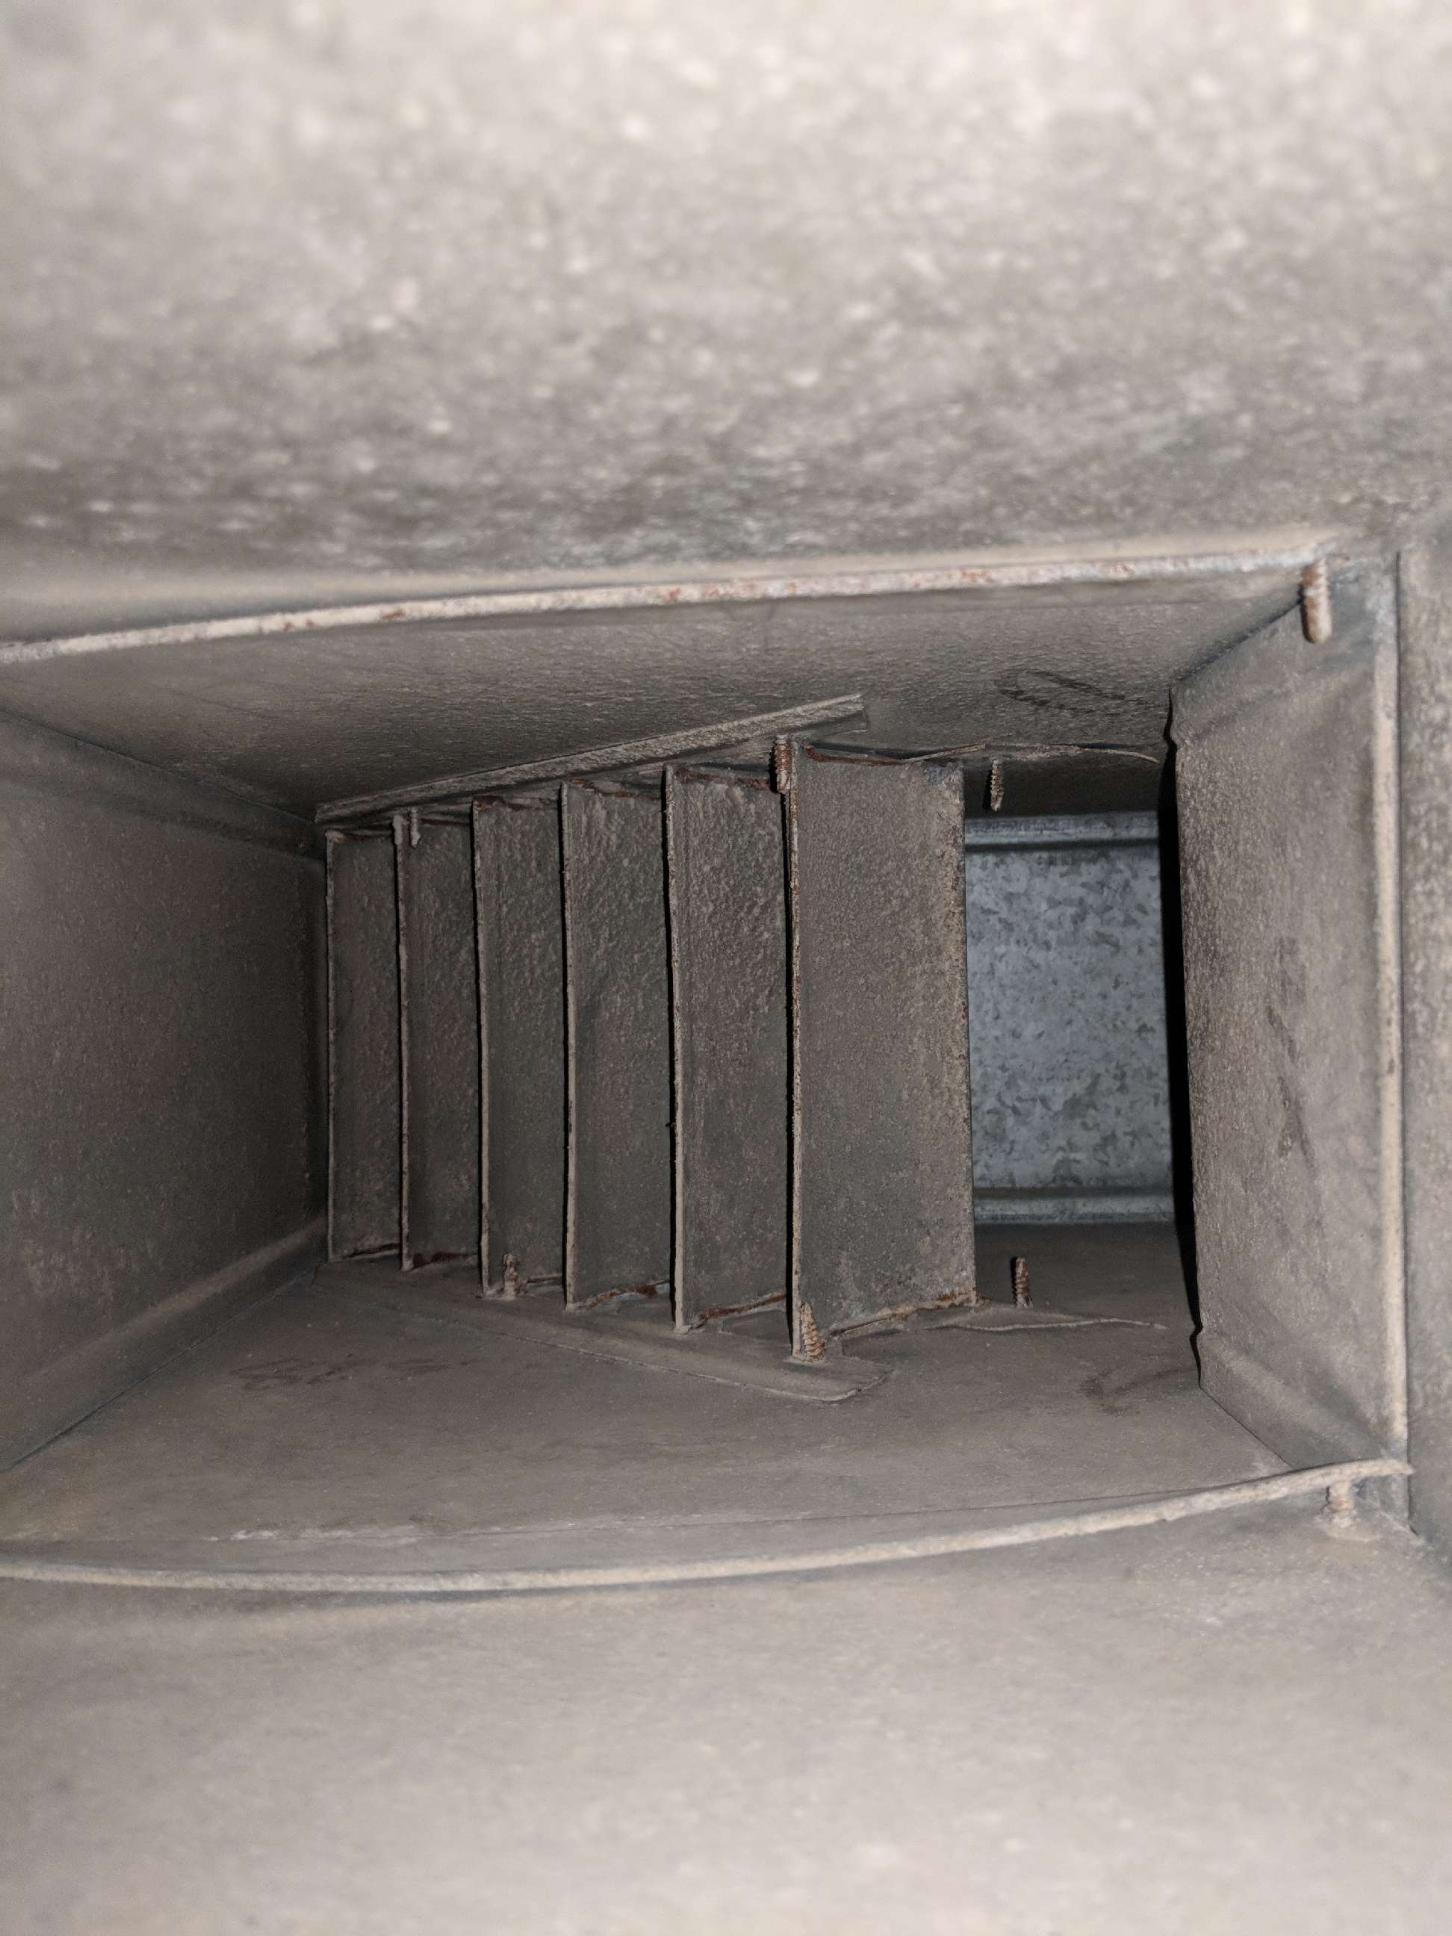 Air Duct Cleaning Chesterfield VA | Hyper Clean Duct Cleaning (804) 744-1080